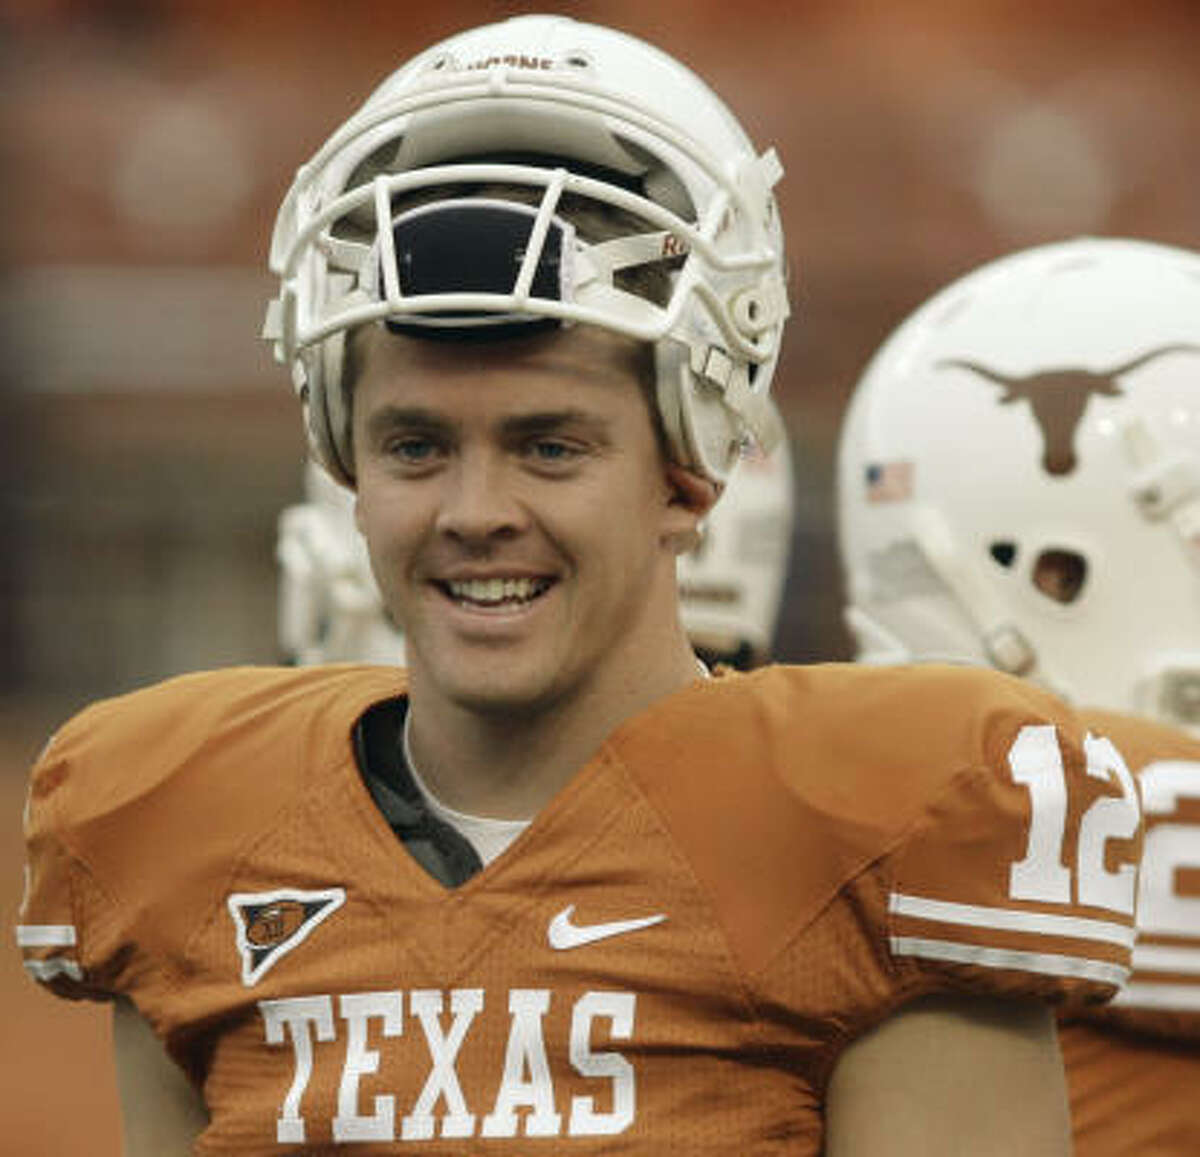 Marquee man Texas quarterback Colt McCoy has a 72.9 completion avarage and 17 touchdowns.